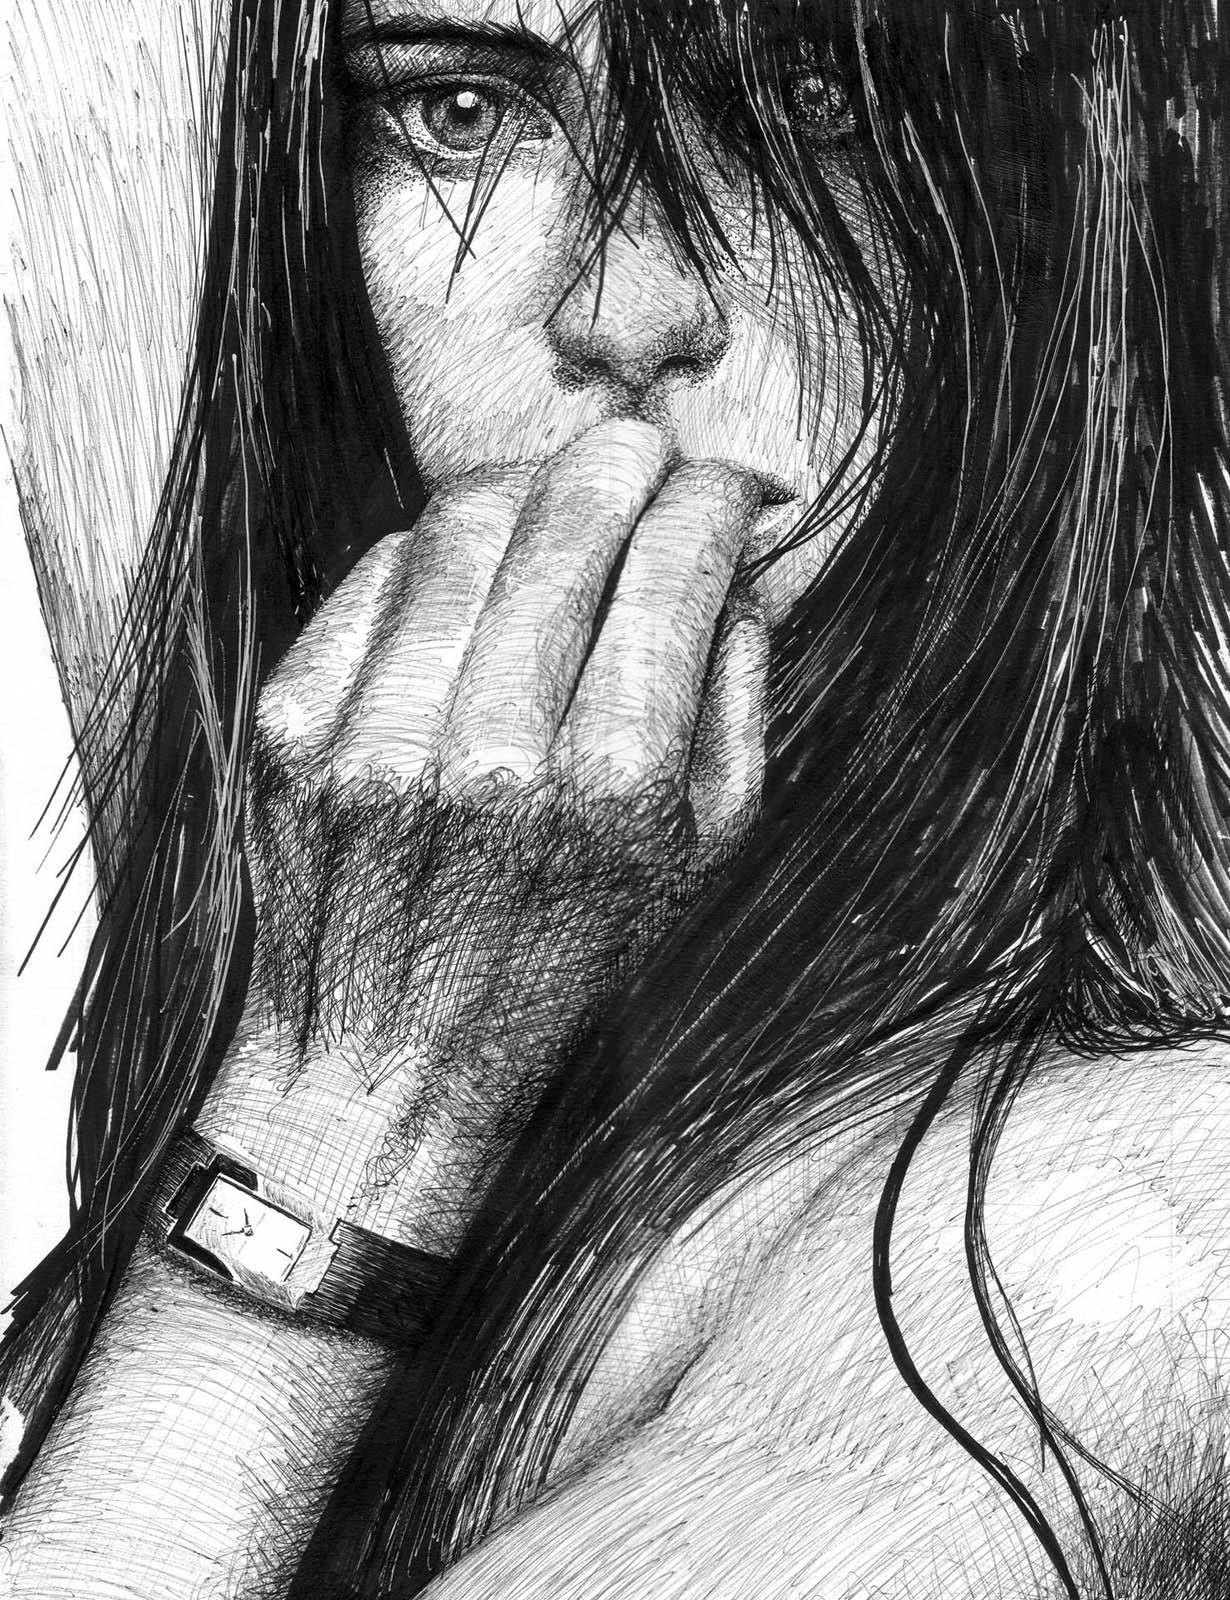 Anxiety by Scuderia0716 on DeviantArt